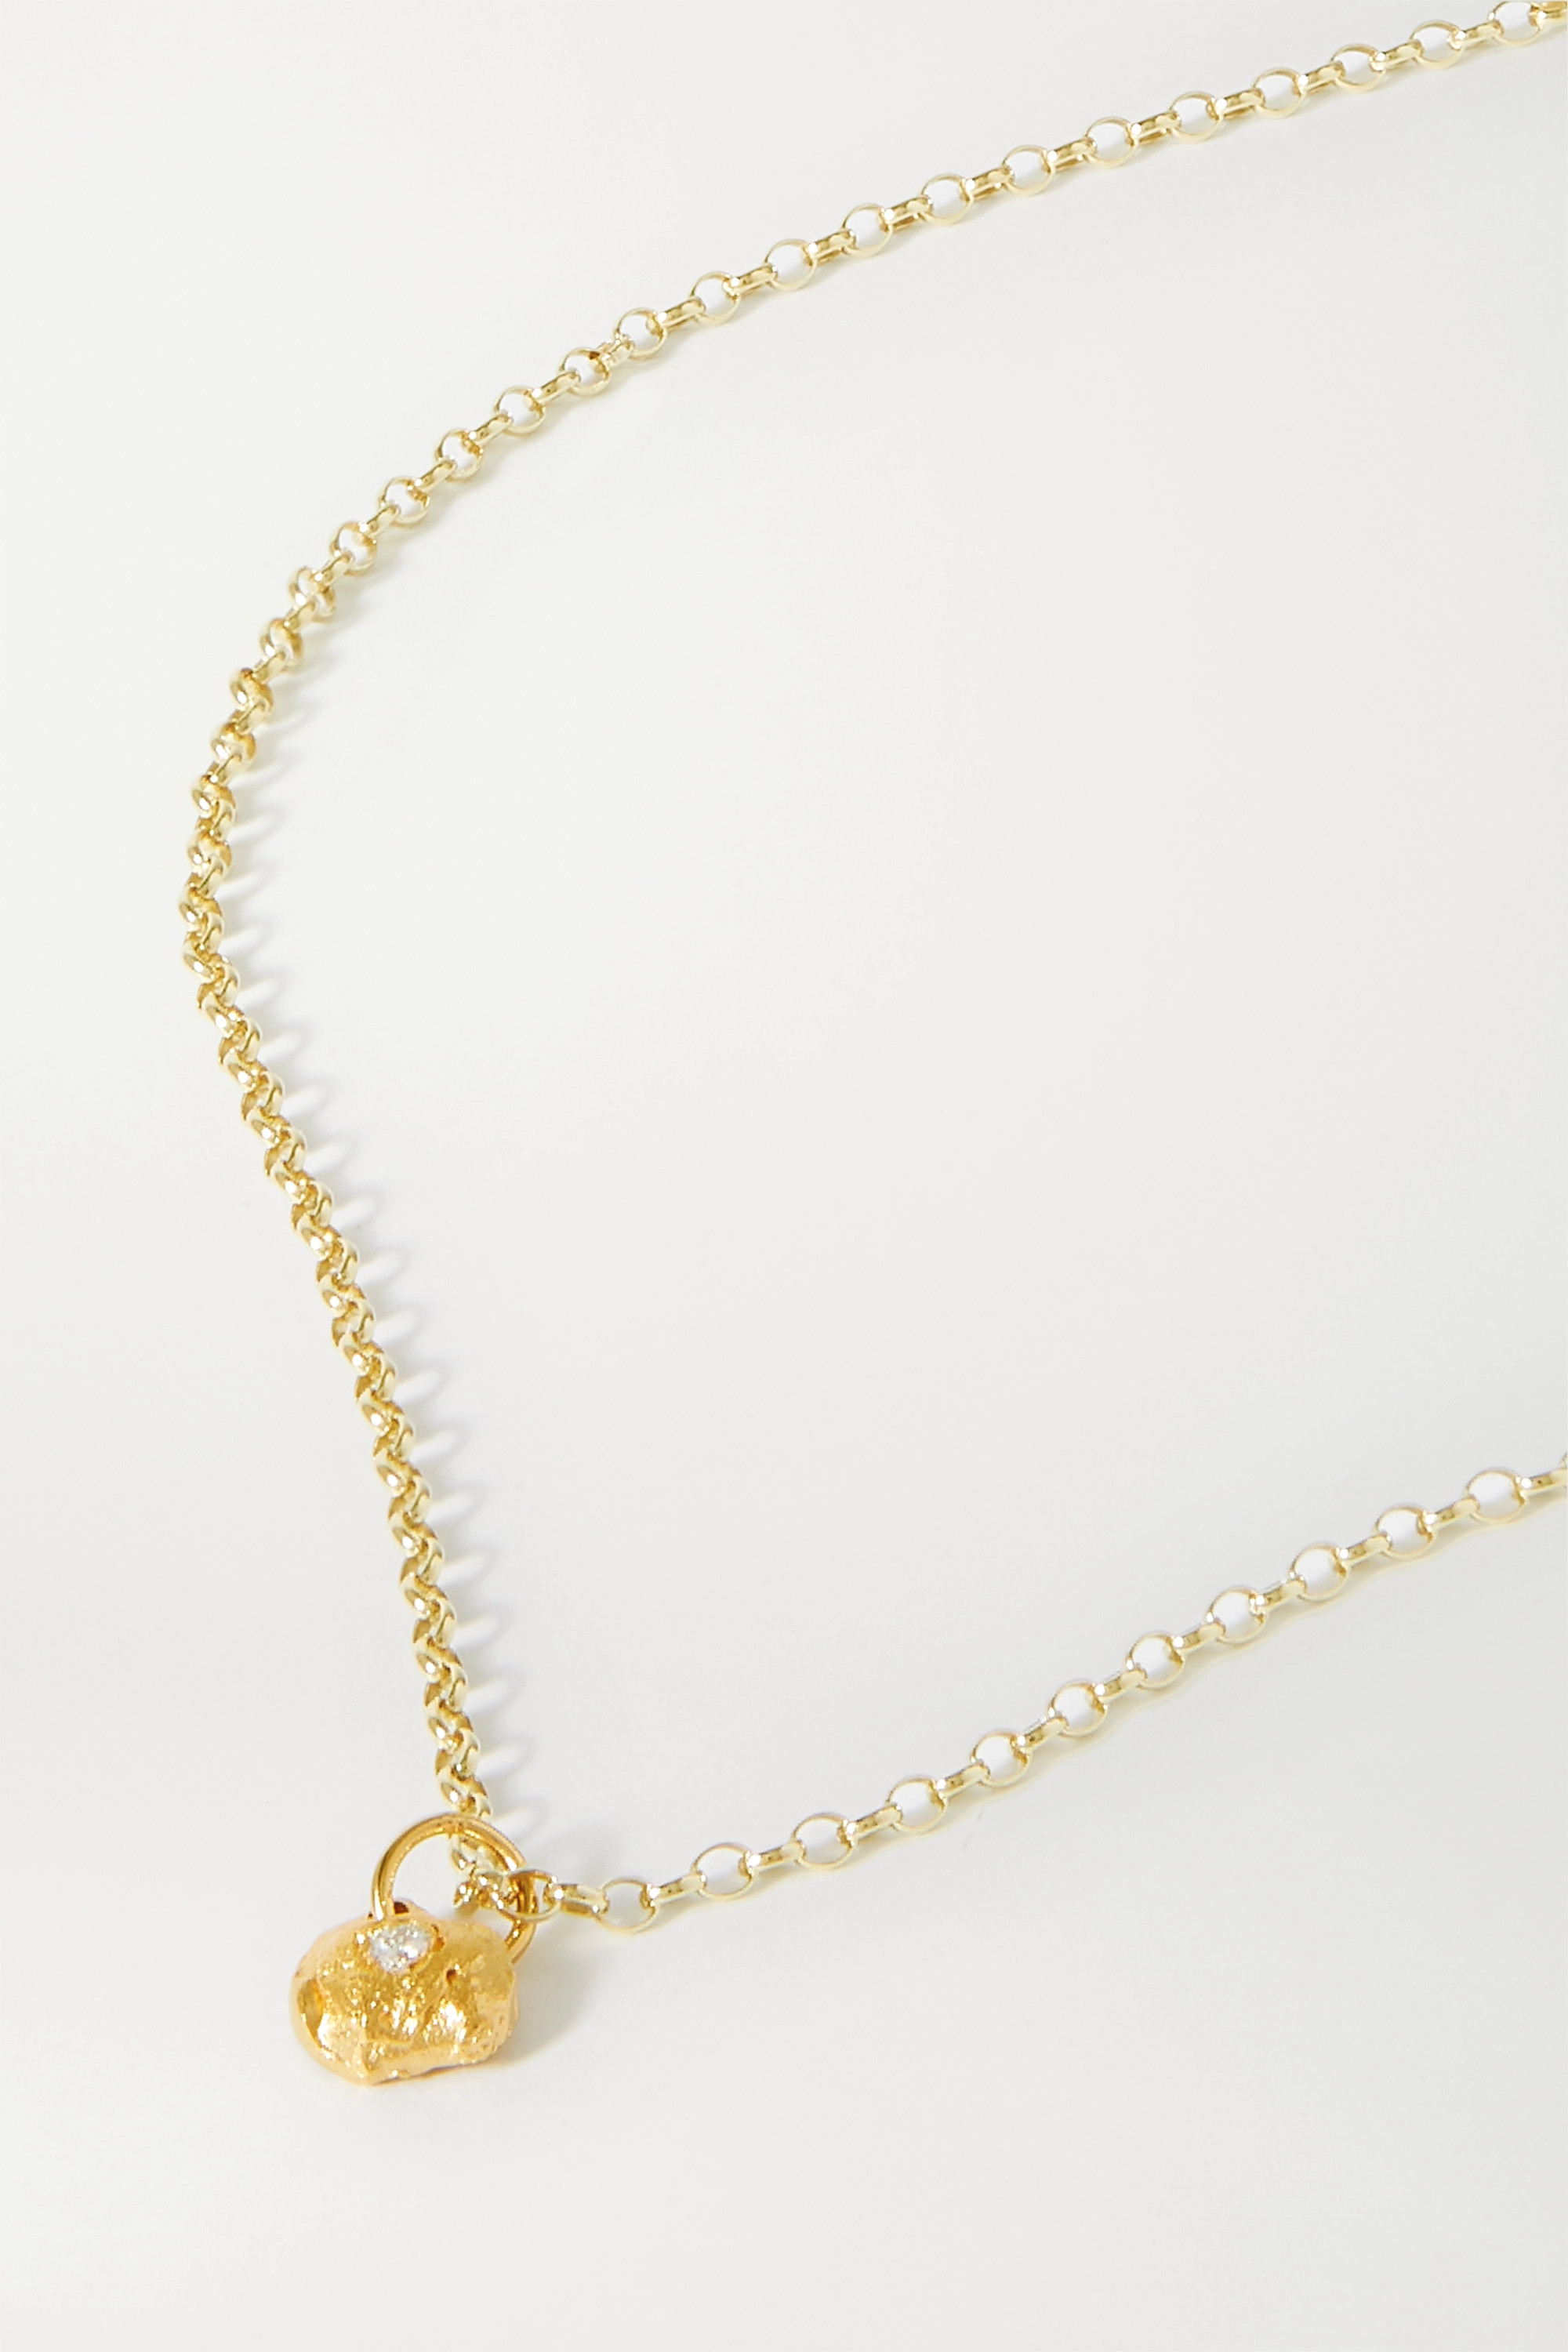 Alighieri A Flash of Lightning gold-plated diamond necklace